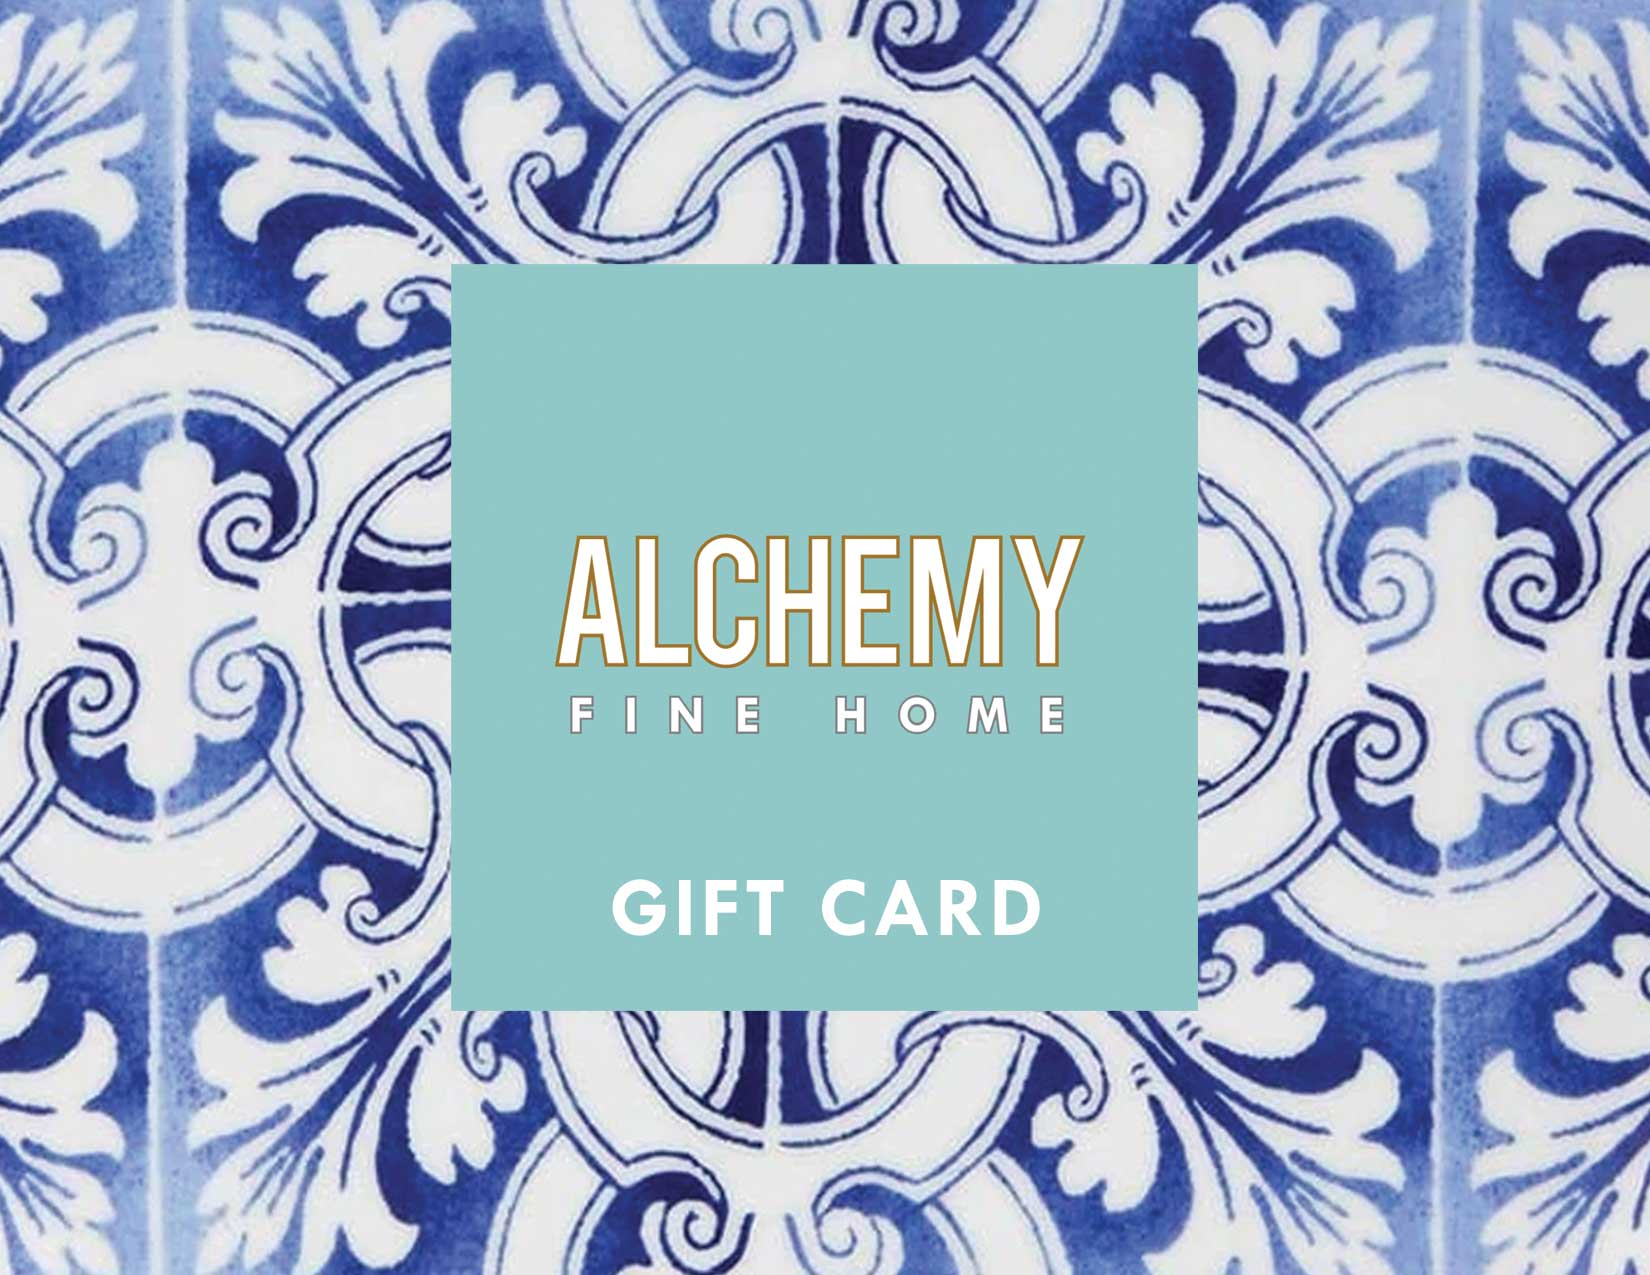 Get Mom a Gift Card